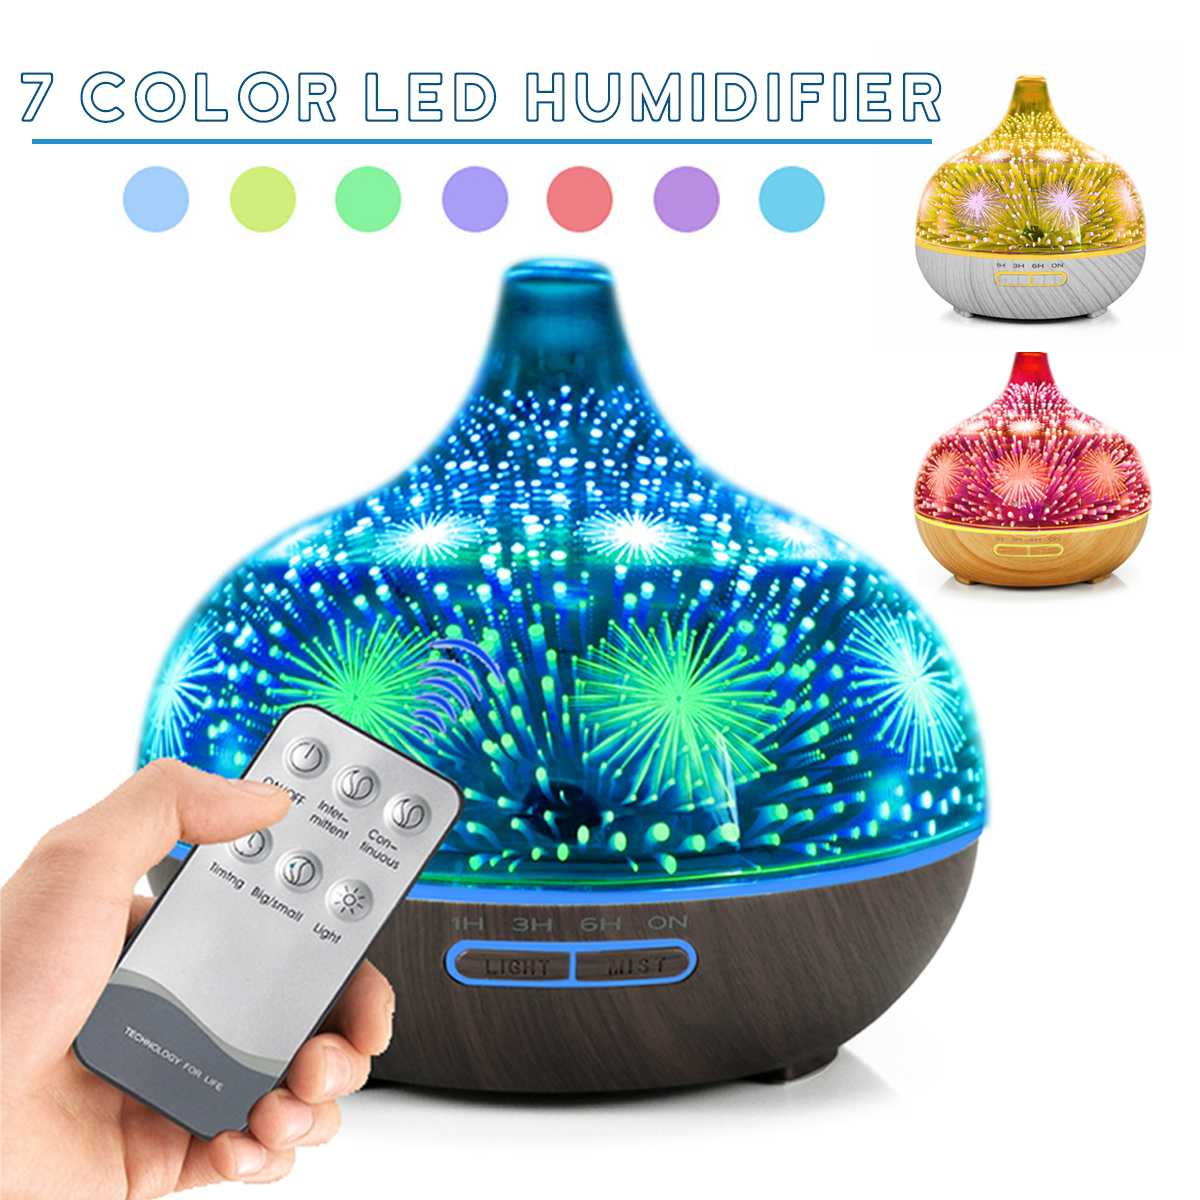 Remote Control Aromatherapy Essential Oil Diffuser Glass And Wood Grain Air Humidifier With 3D Fireworks Effect Electric Air Purifier With 7 Colors Changing LED Flash